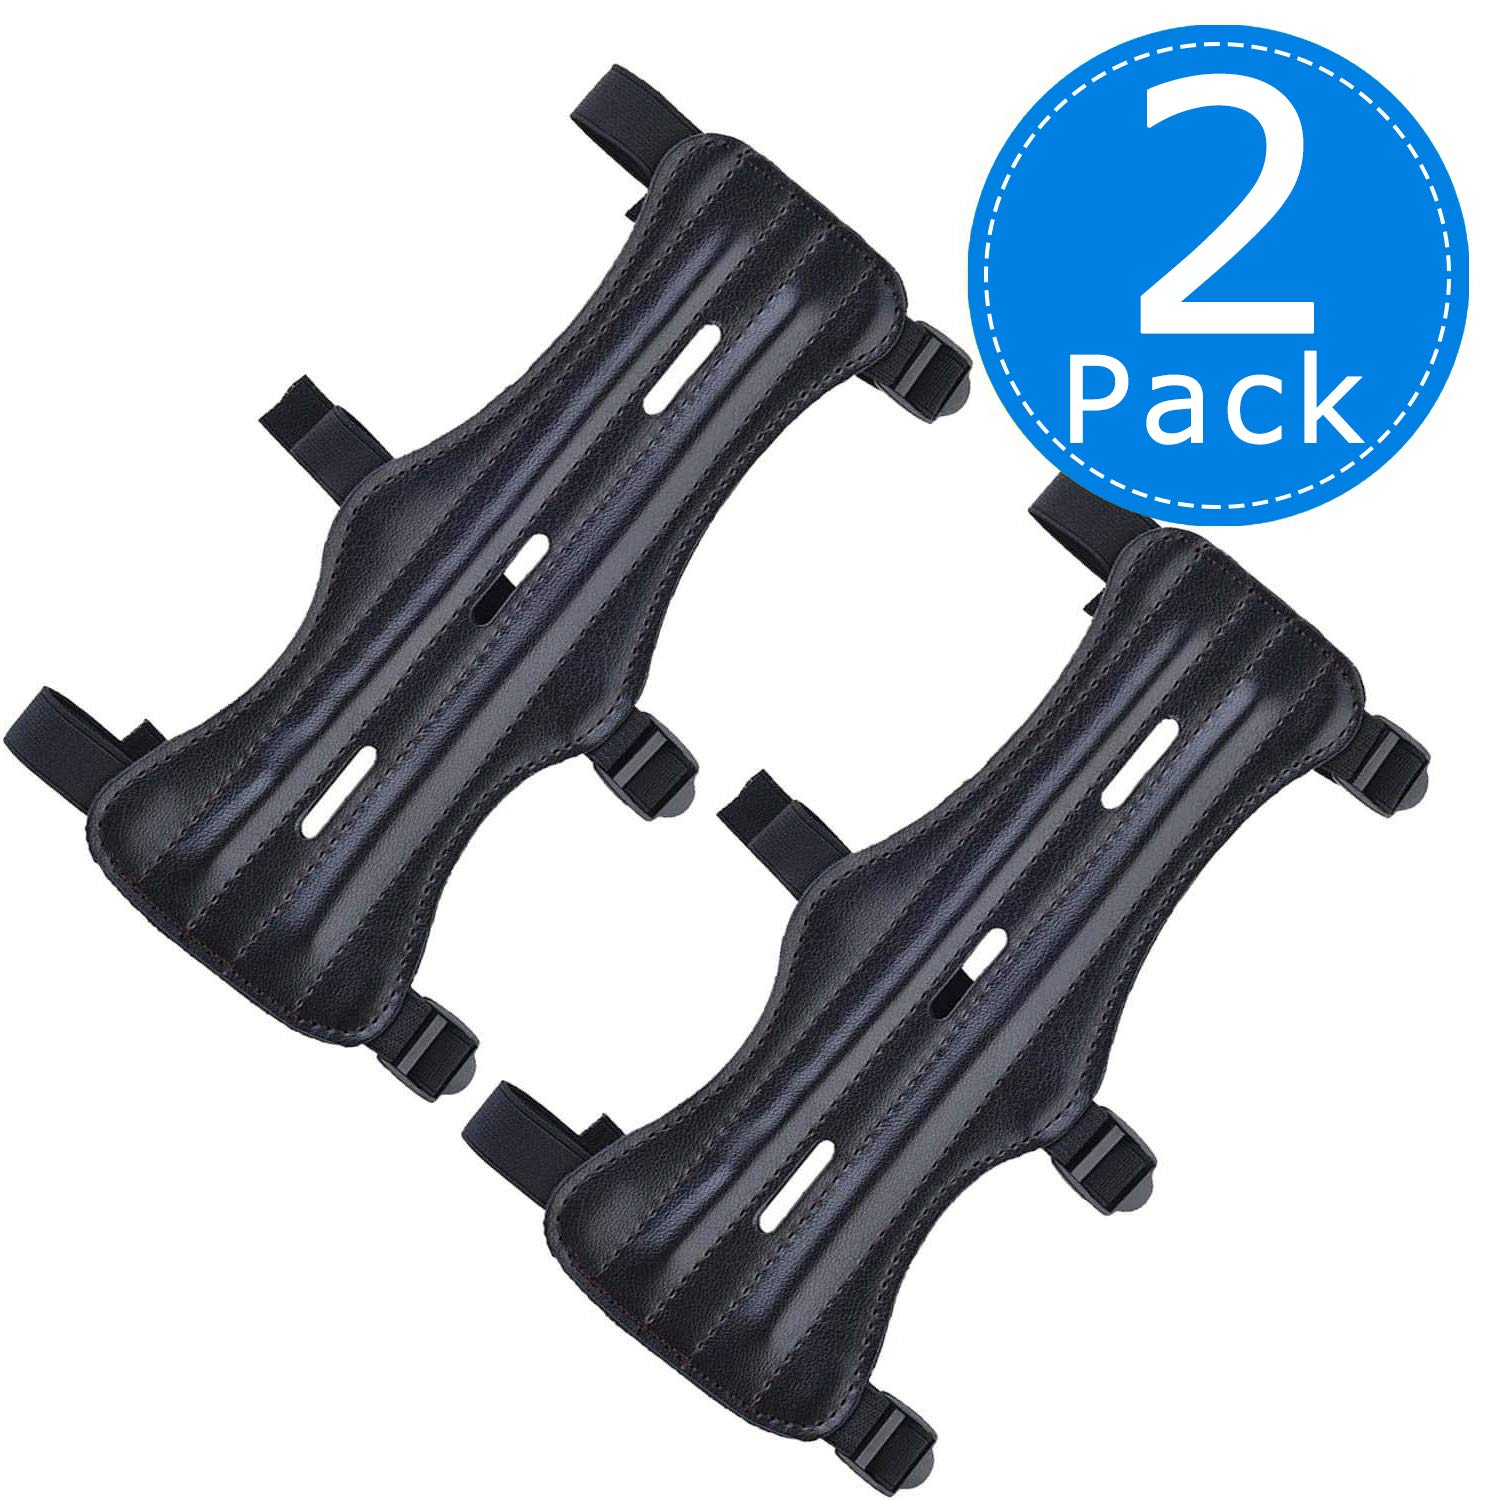 Archery Arm Guards Leather Forearm Protector Adjustable 3 Straps Buckles Bow Armguard (2 Pack) by PrtyKing